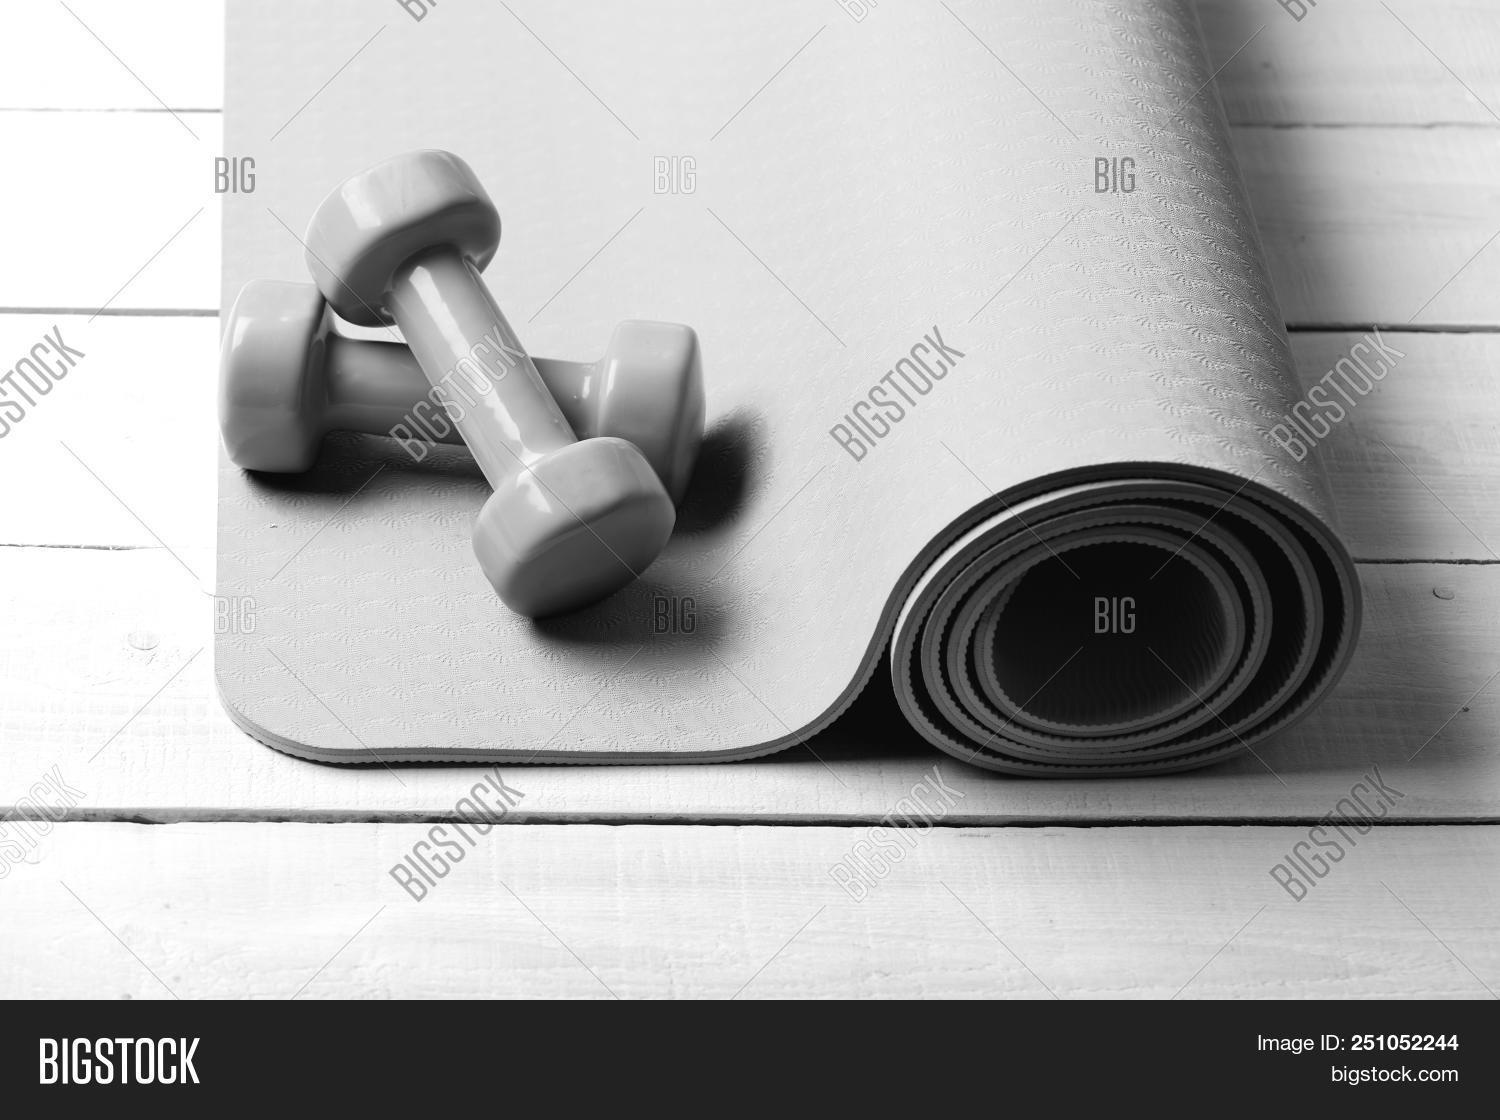 306d0bc8bad01 Sports and healthy lifestyle concept. Barbells in small size lie on rolled  purple yoga mat, close up. Dumbbells made of green plastic on light wooden  ...